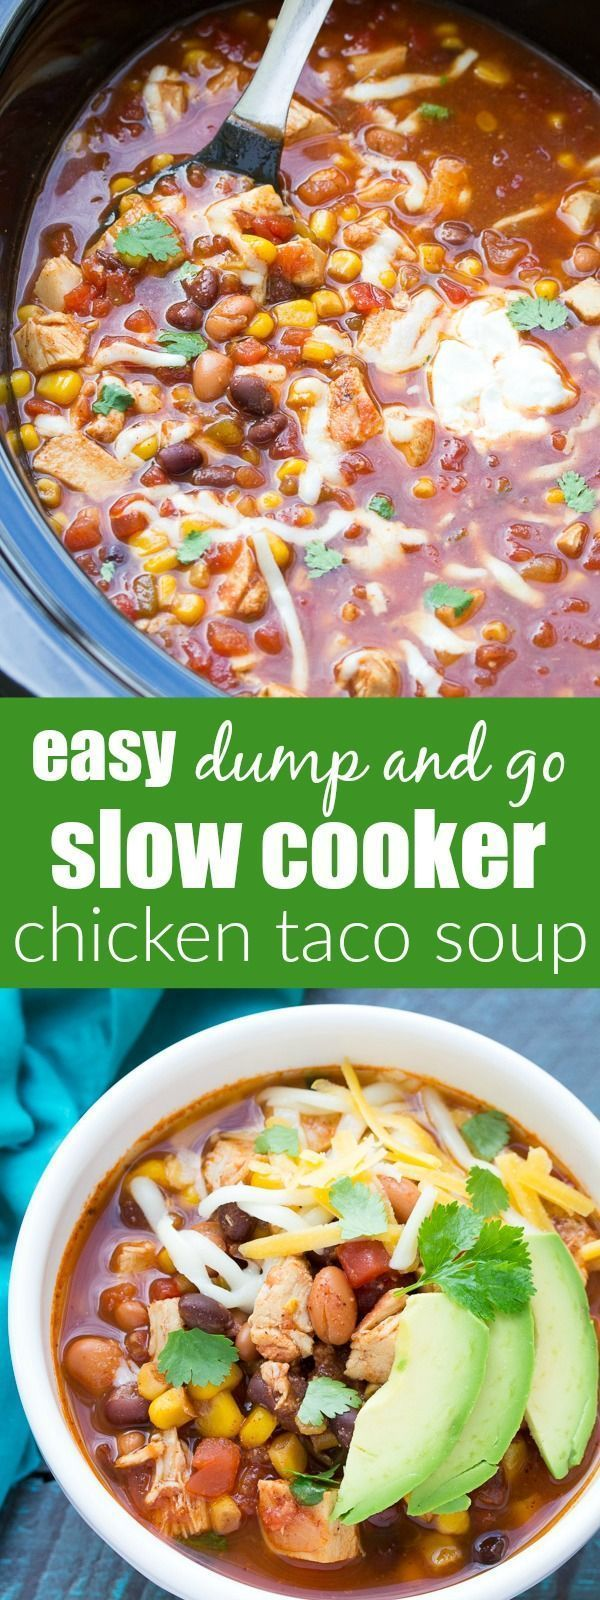 Dump and go (no chopping) easy slow cooker chicken taco soup recipe. A family favorite, made in your crock pot! | http://www.kristineskitchenblog.com